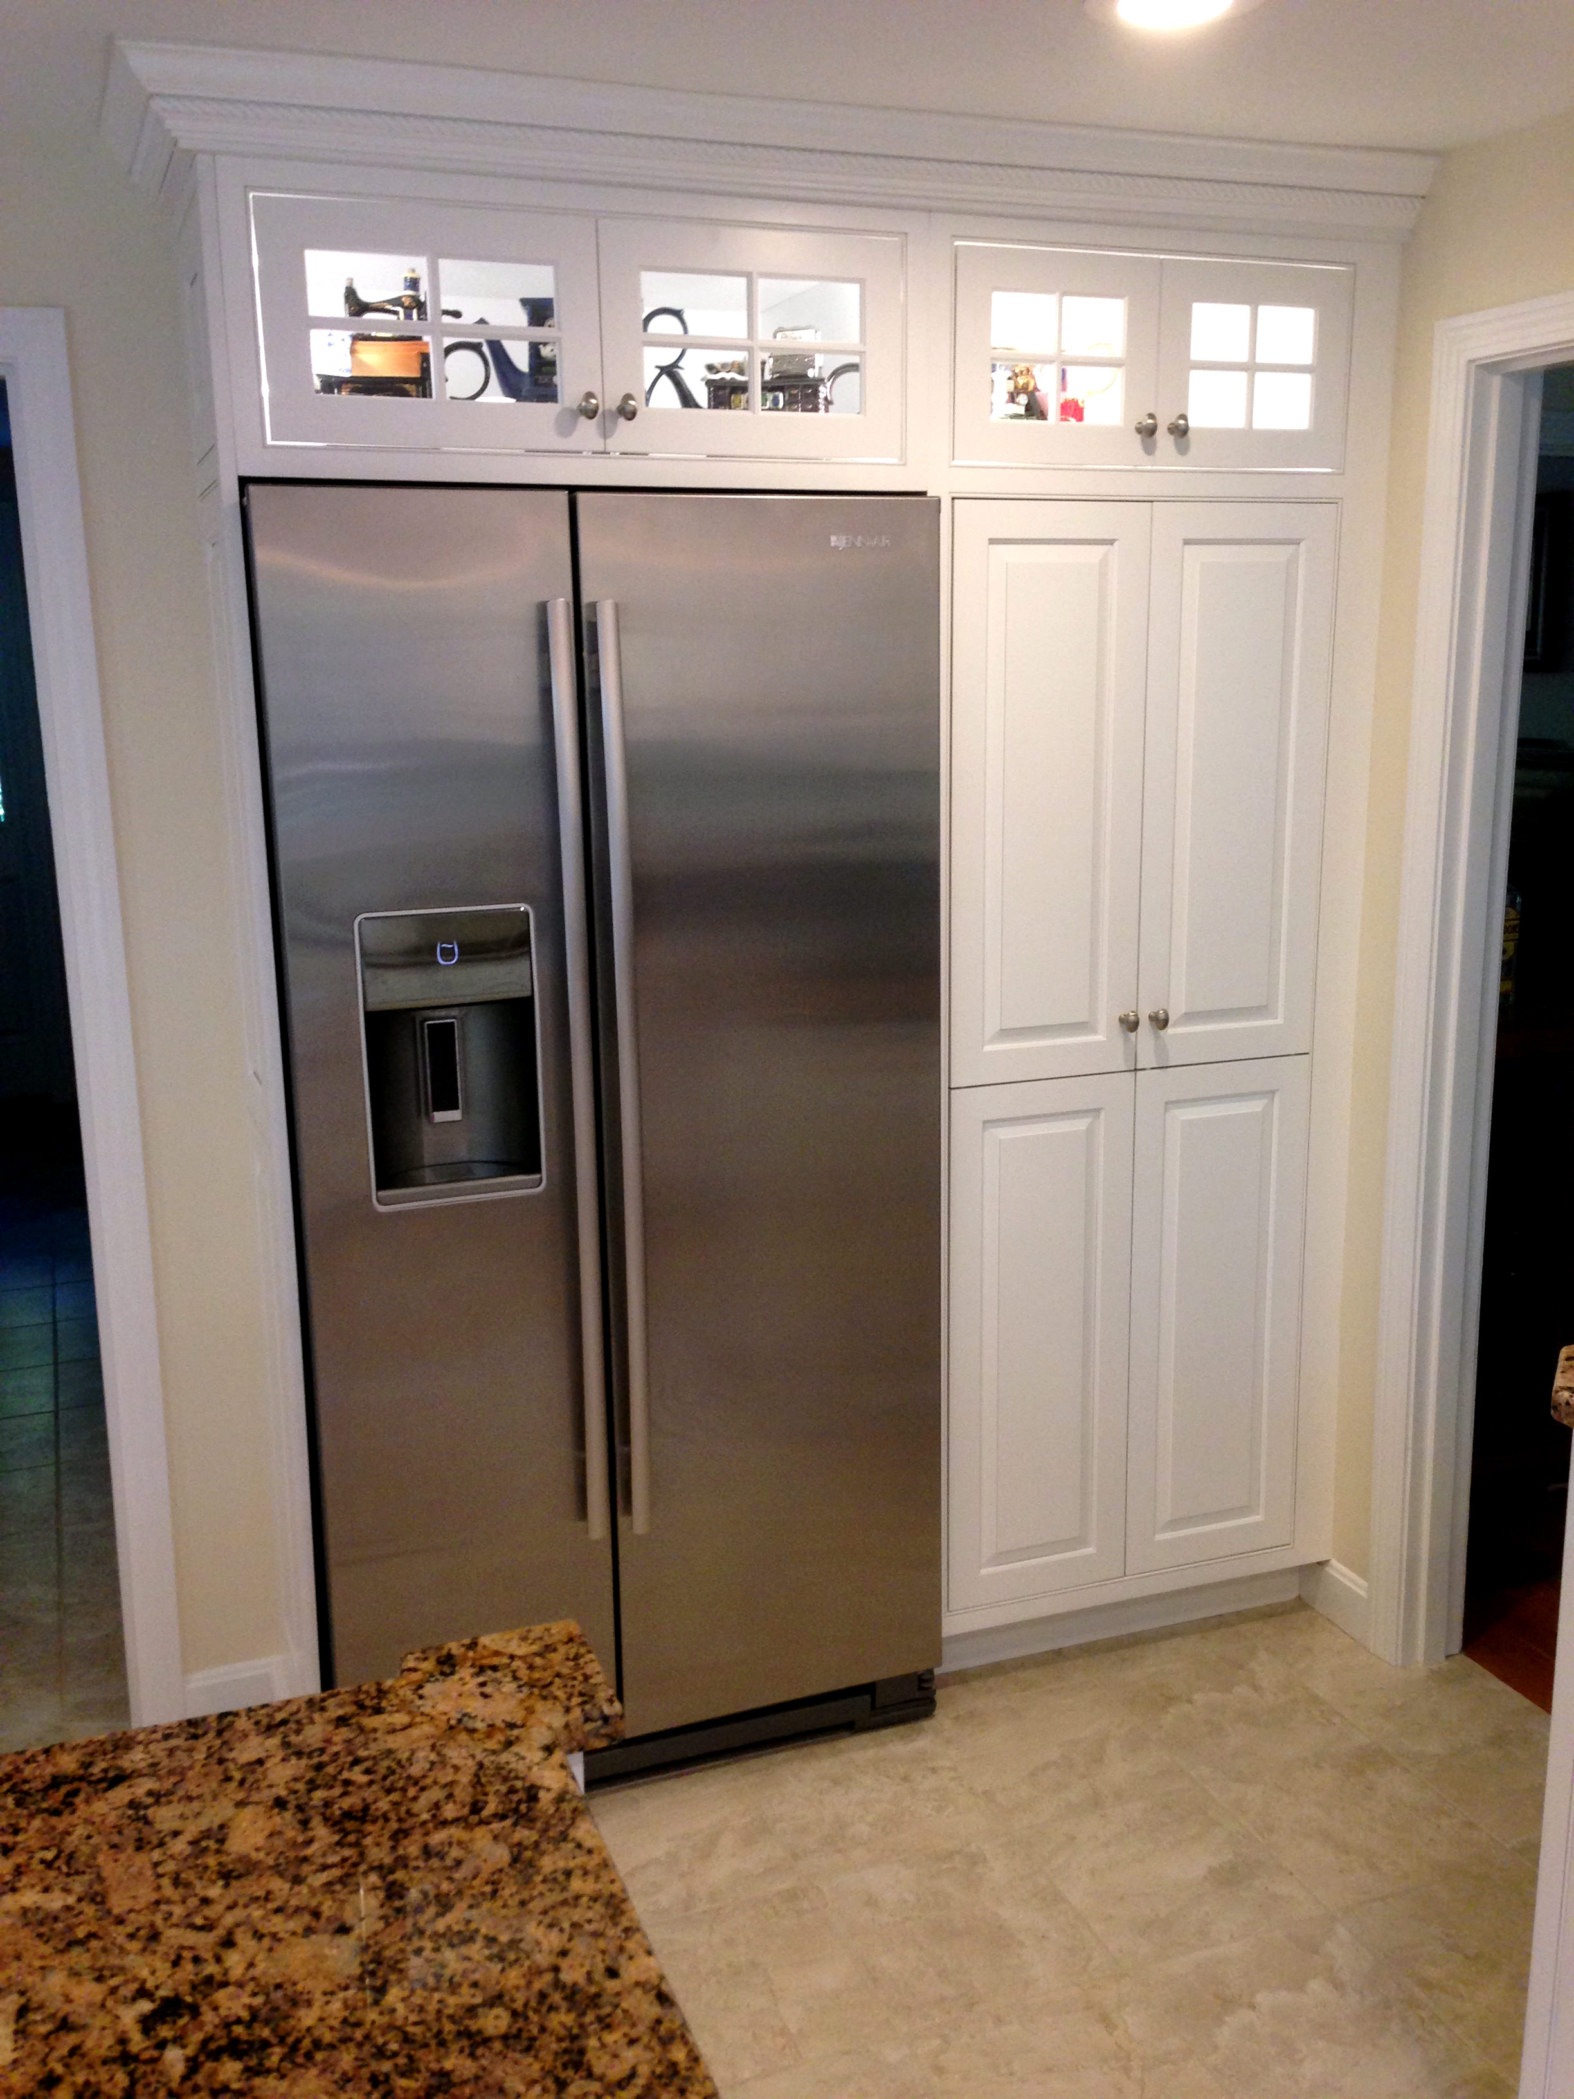 M F Goodwin Company Built In Refrigerator Cabinetry Surround